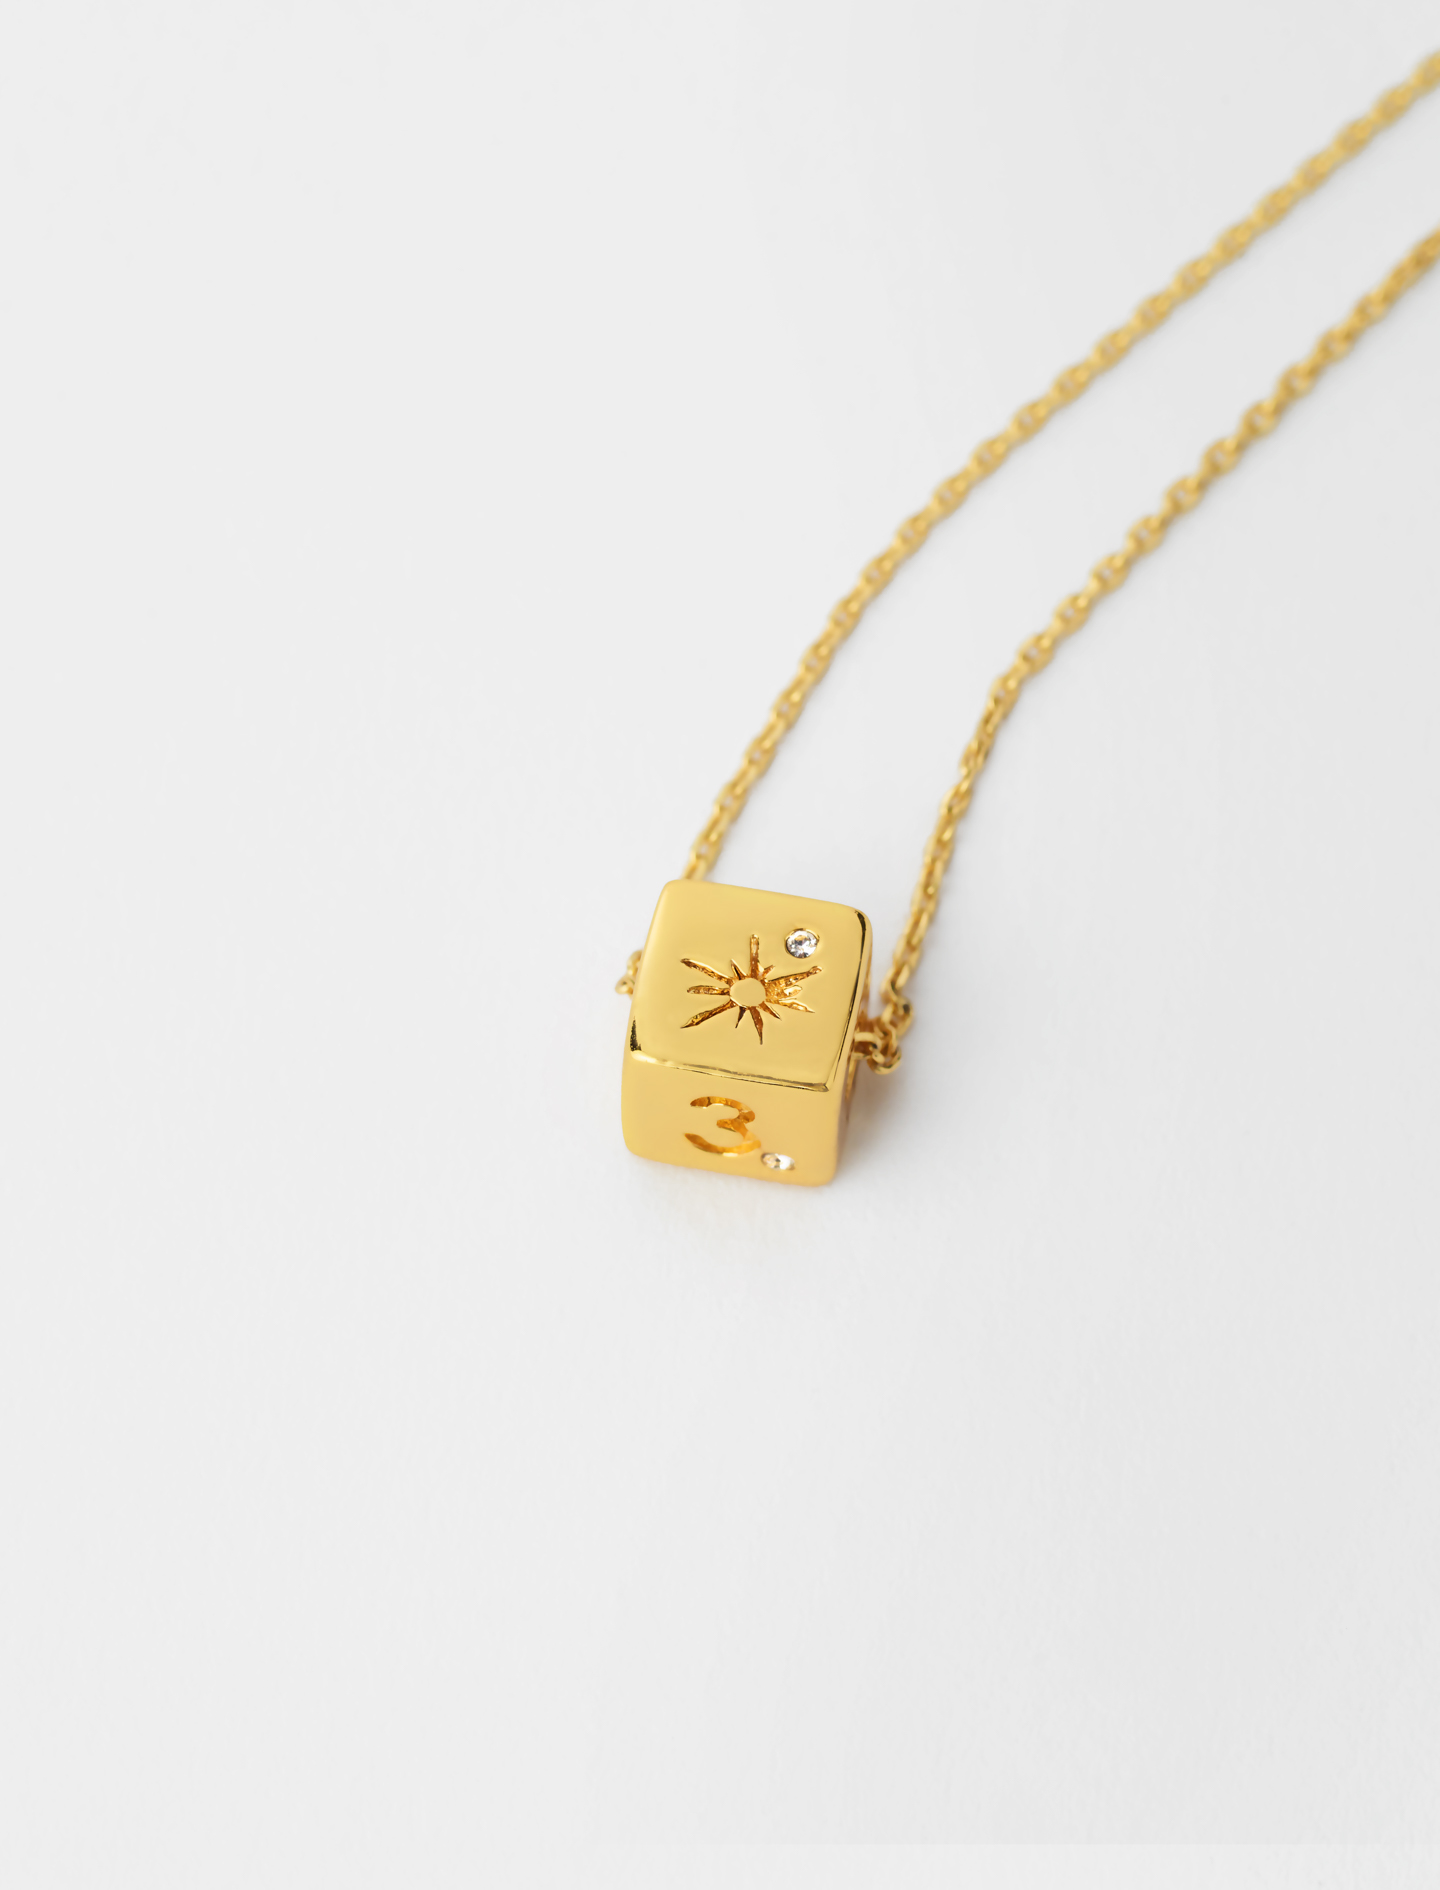 Number 3 dice necklace - Gold